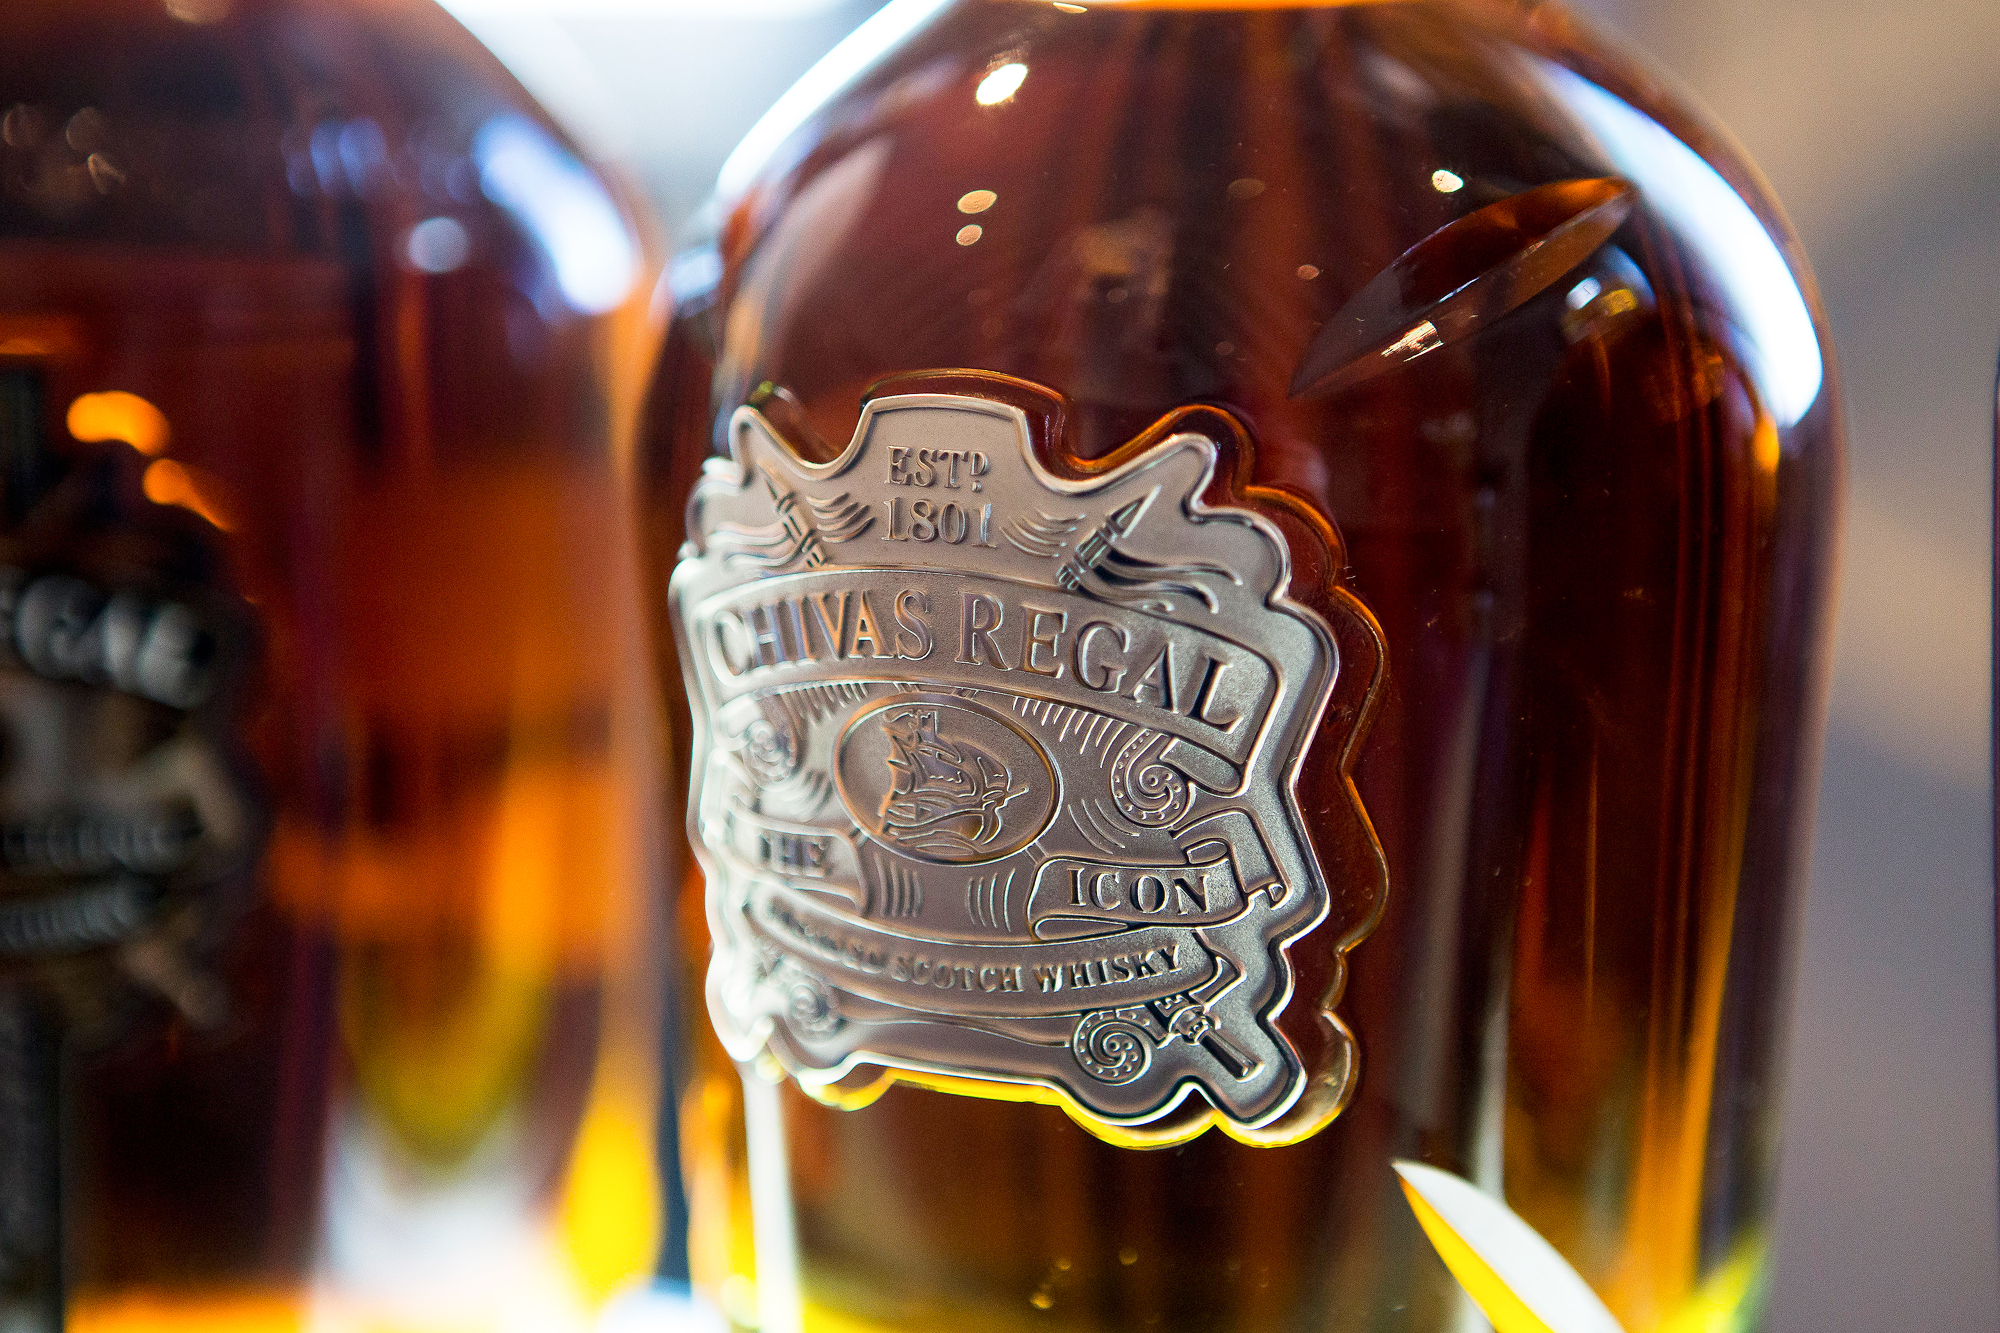 Chivas Regal Brings The Icon To The UK